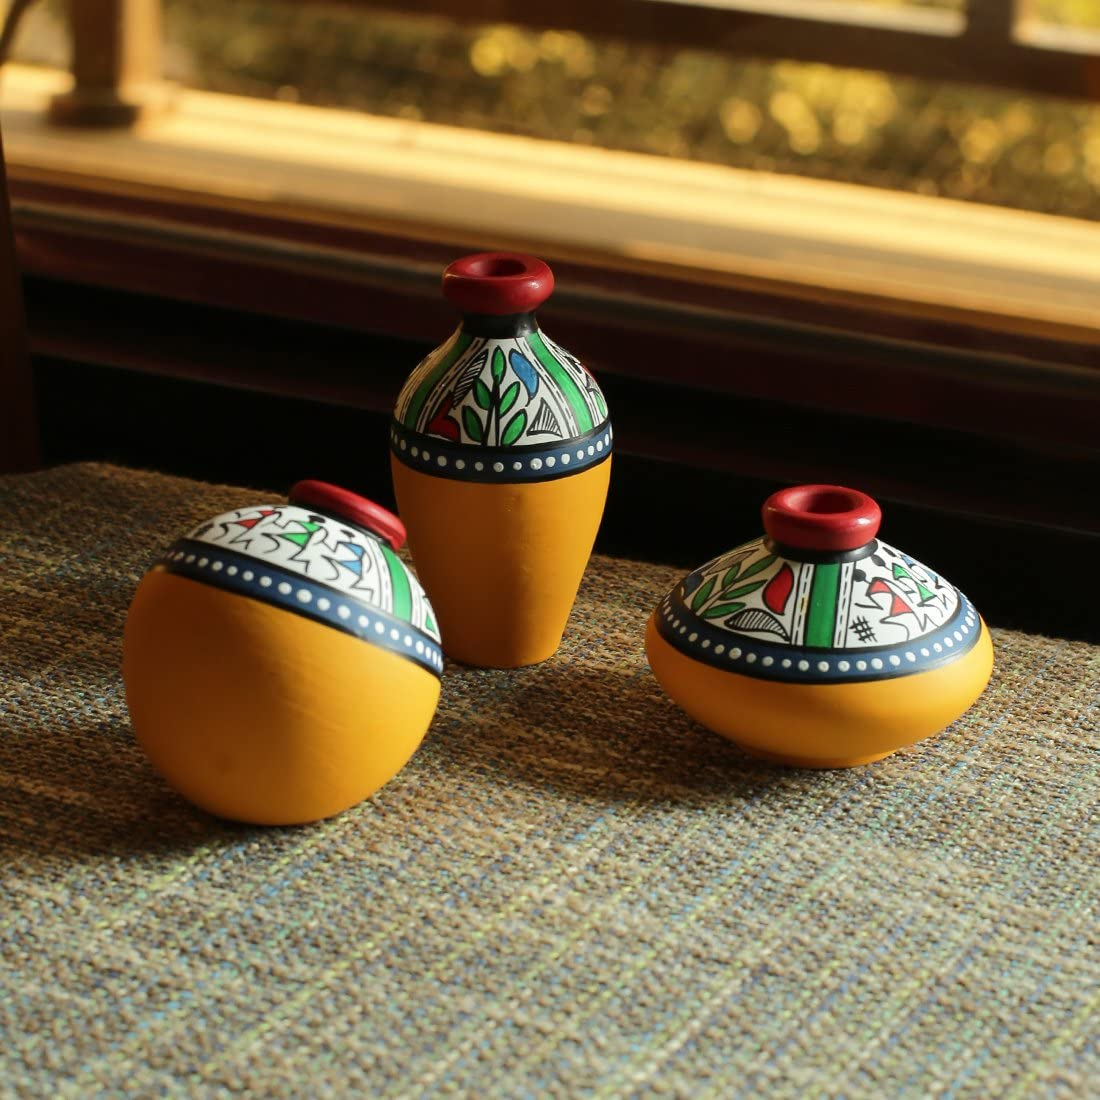 ExclusiveLane Terracotta Warli Handpainted Miniature Yellow Pots (Set of 3) - Miniature Terracotta Pots Home Décorative Artefacts for Living Room Bedroom Table Decor (Height: 2-3 Inch, Small)